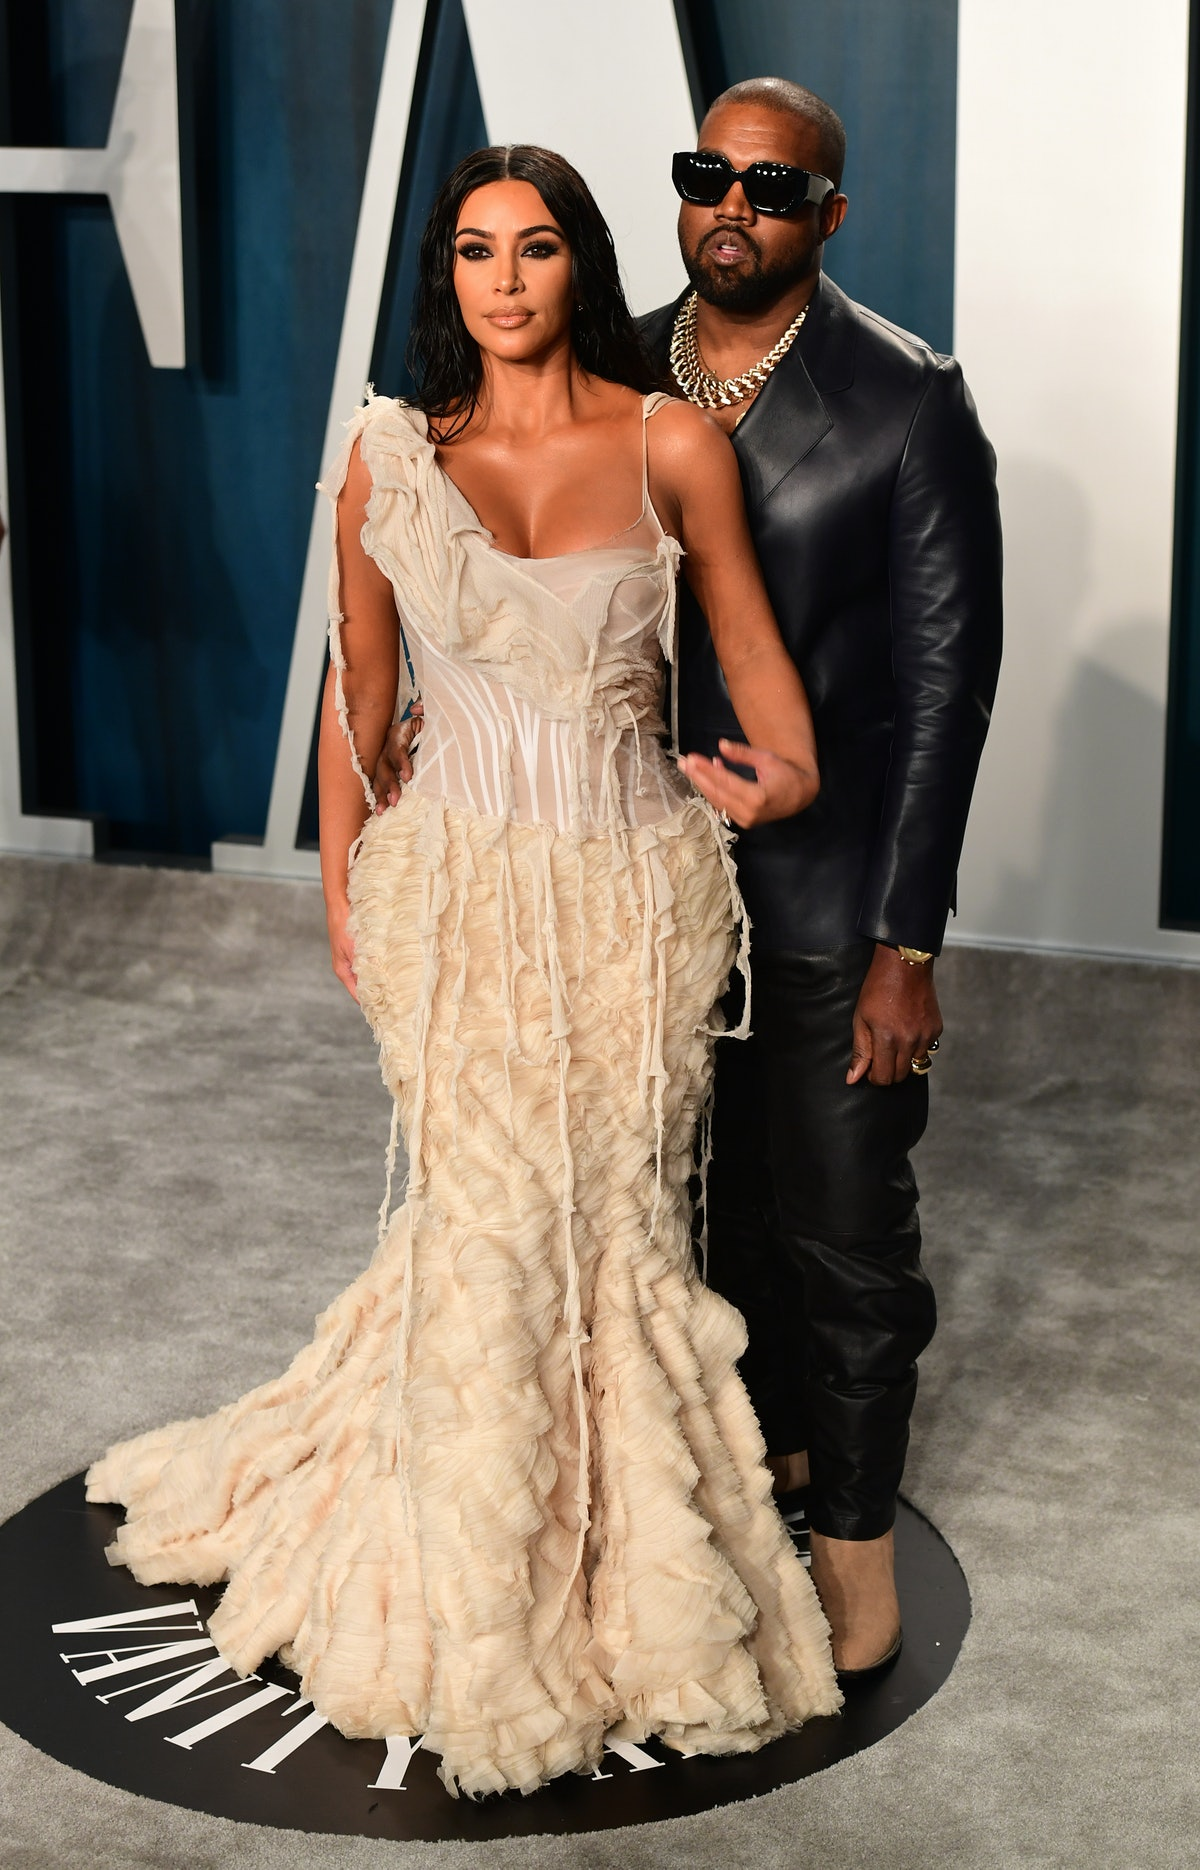 """Kim Kardashian, shown here in a white dress alongside Kanye West, said her marriage to her husband made her feel """"lonely."""""""